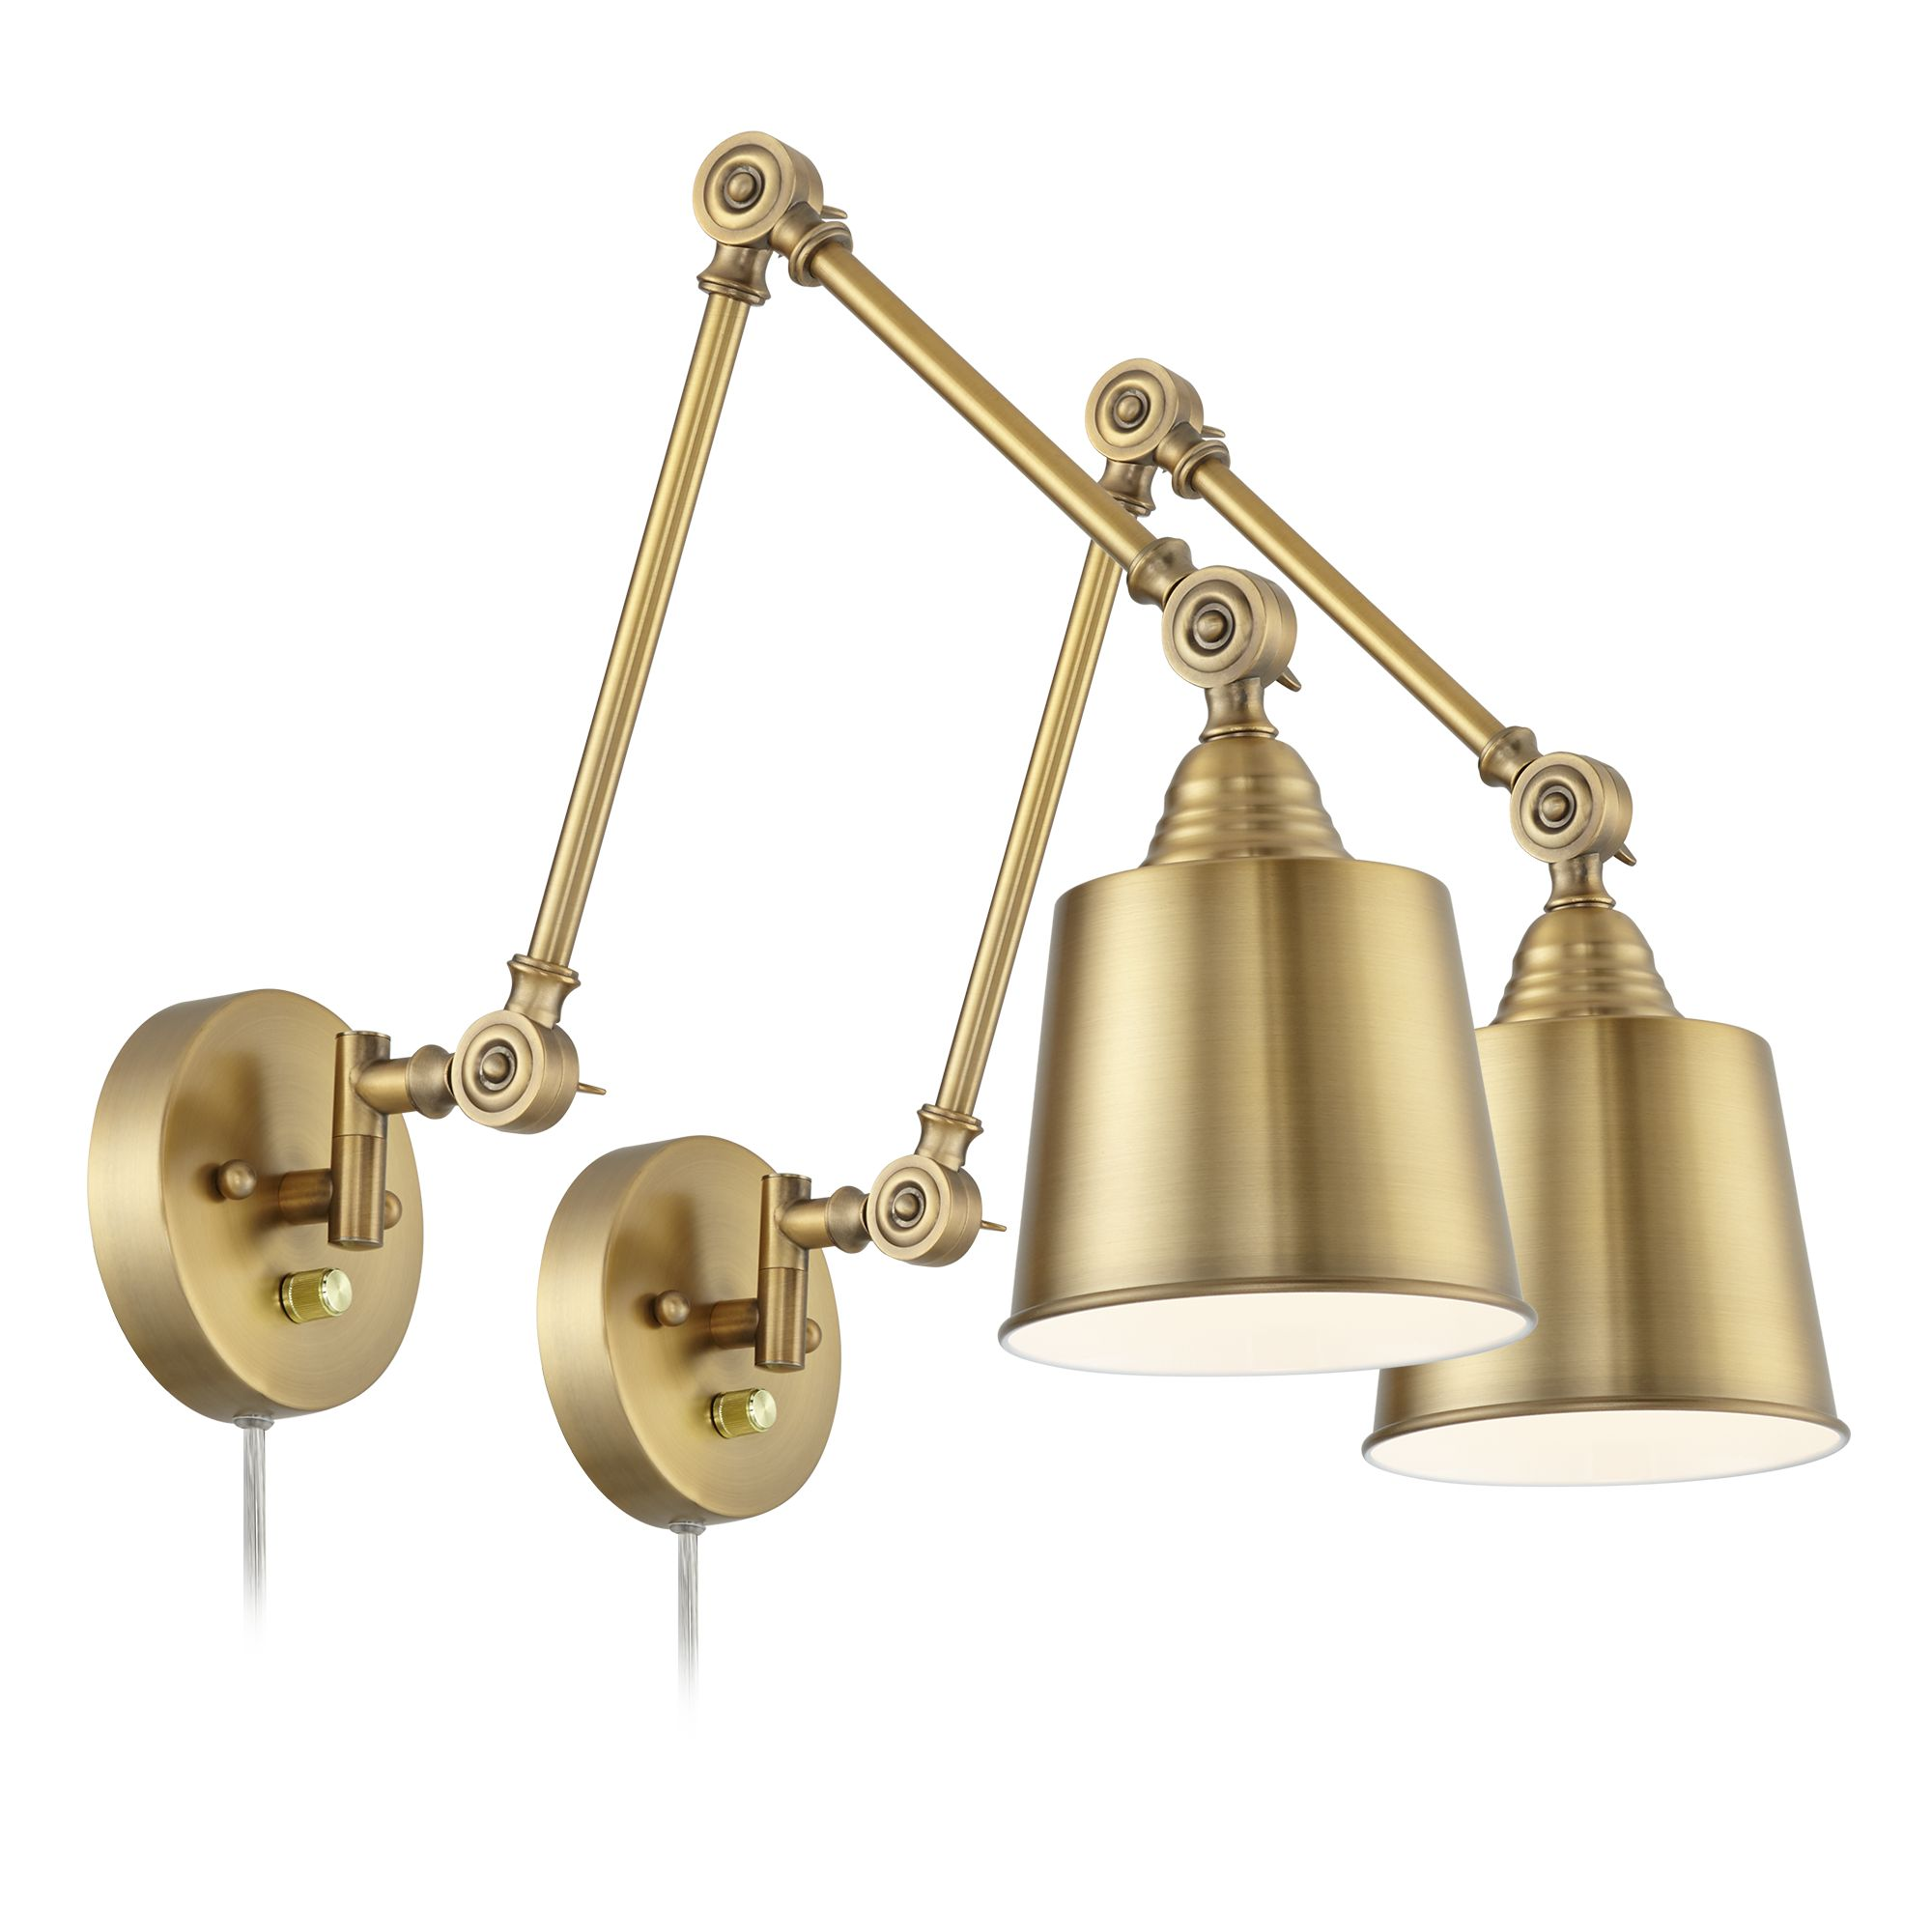 Superieur 360 Lighting Set Of 2 Mendes Antique Brass Down Light Plug In Wall Lamps